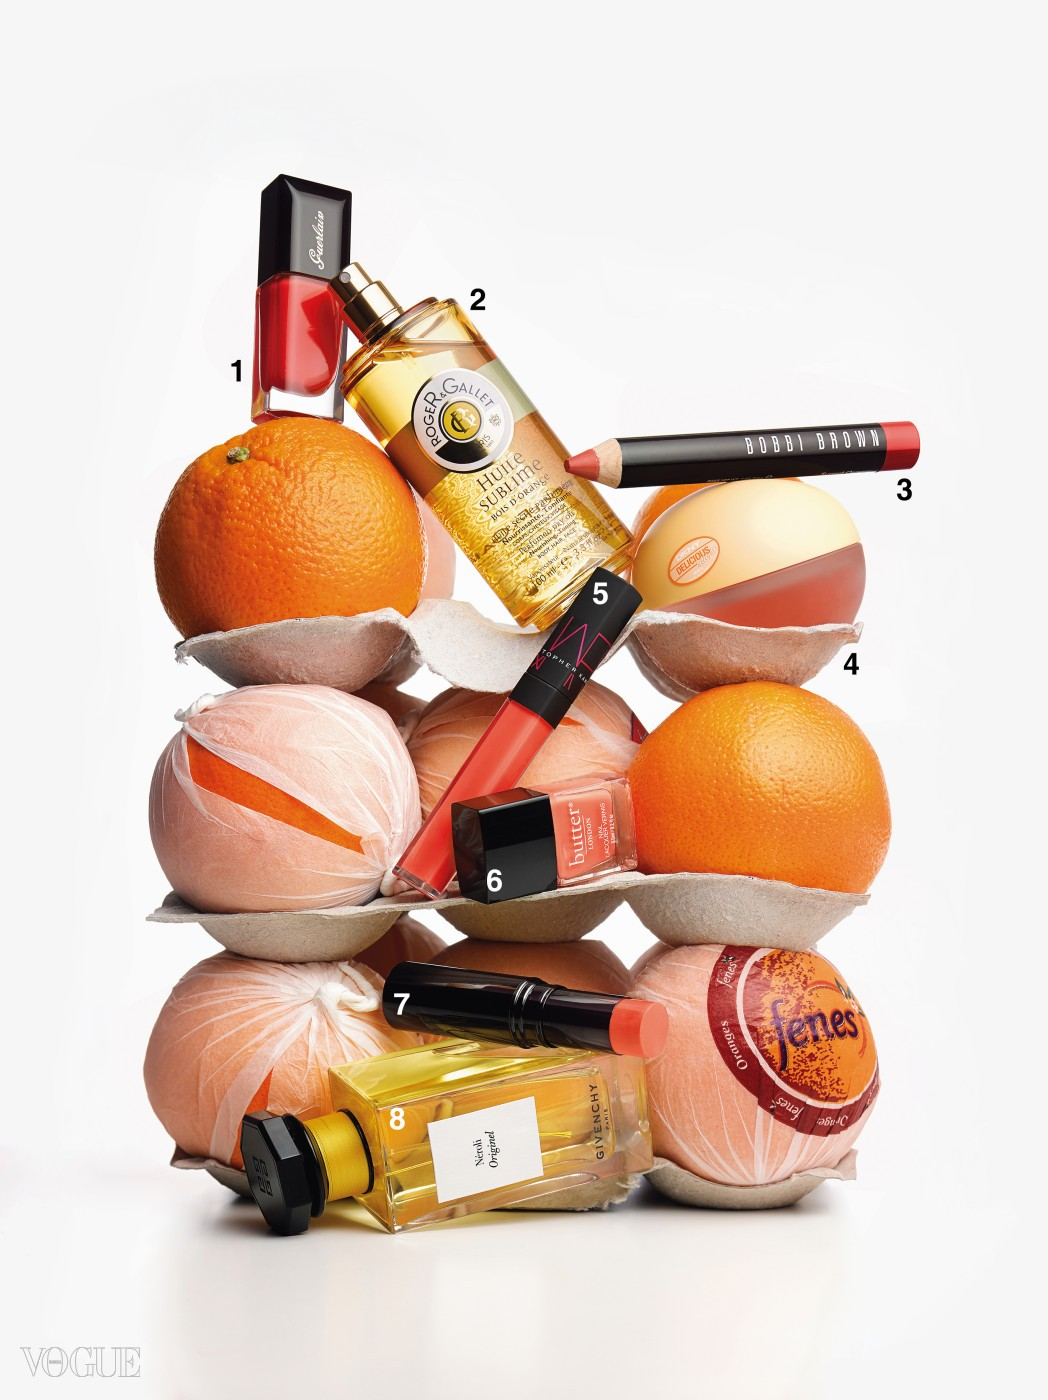 Beauty, citrus, orange, summer, studio shot, selection, fragrances, nail polish, lipstick